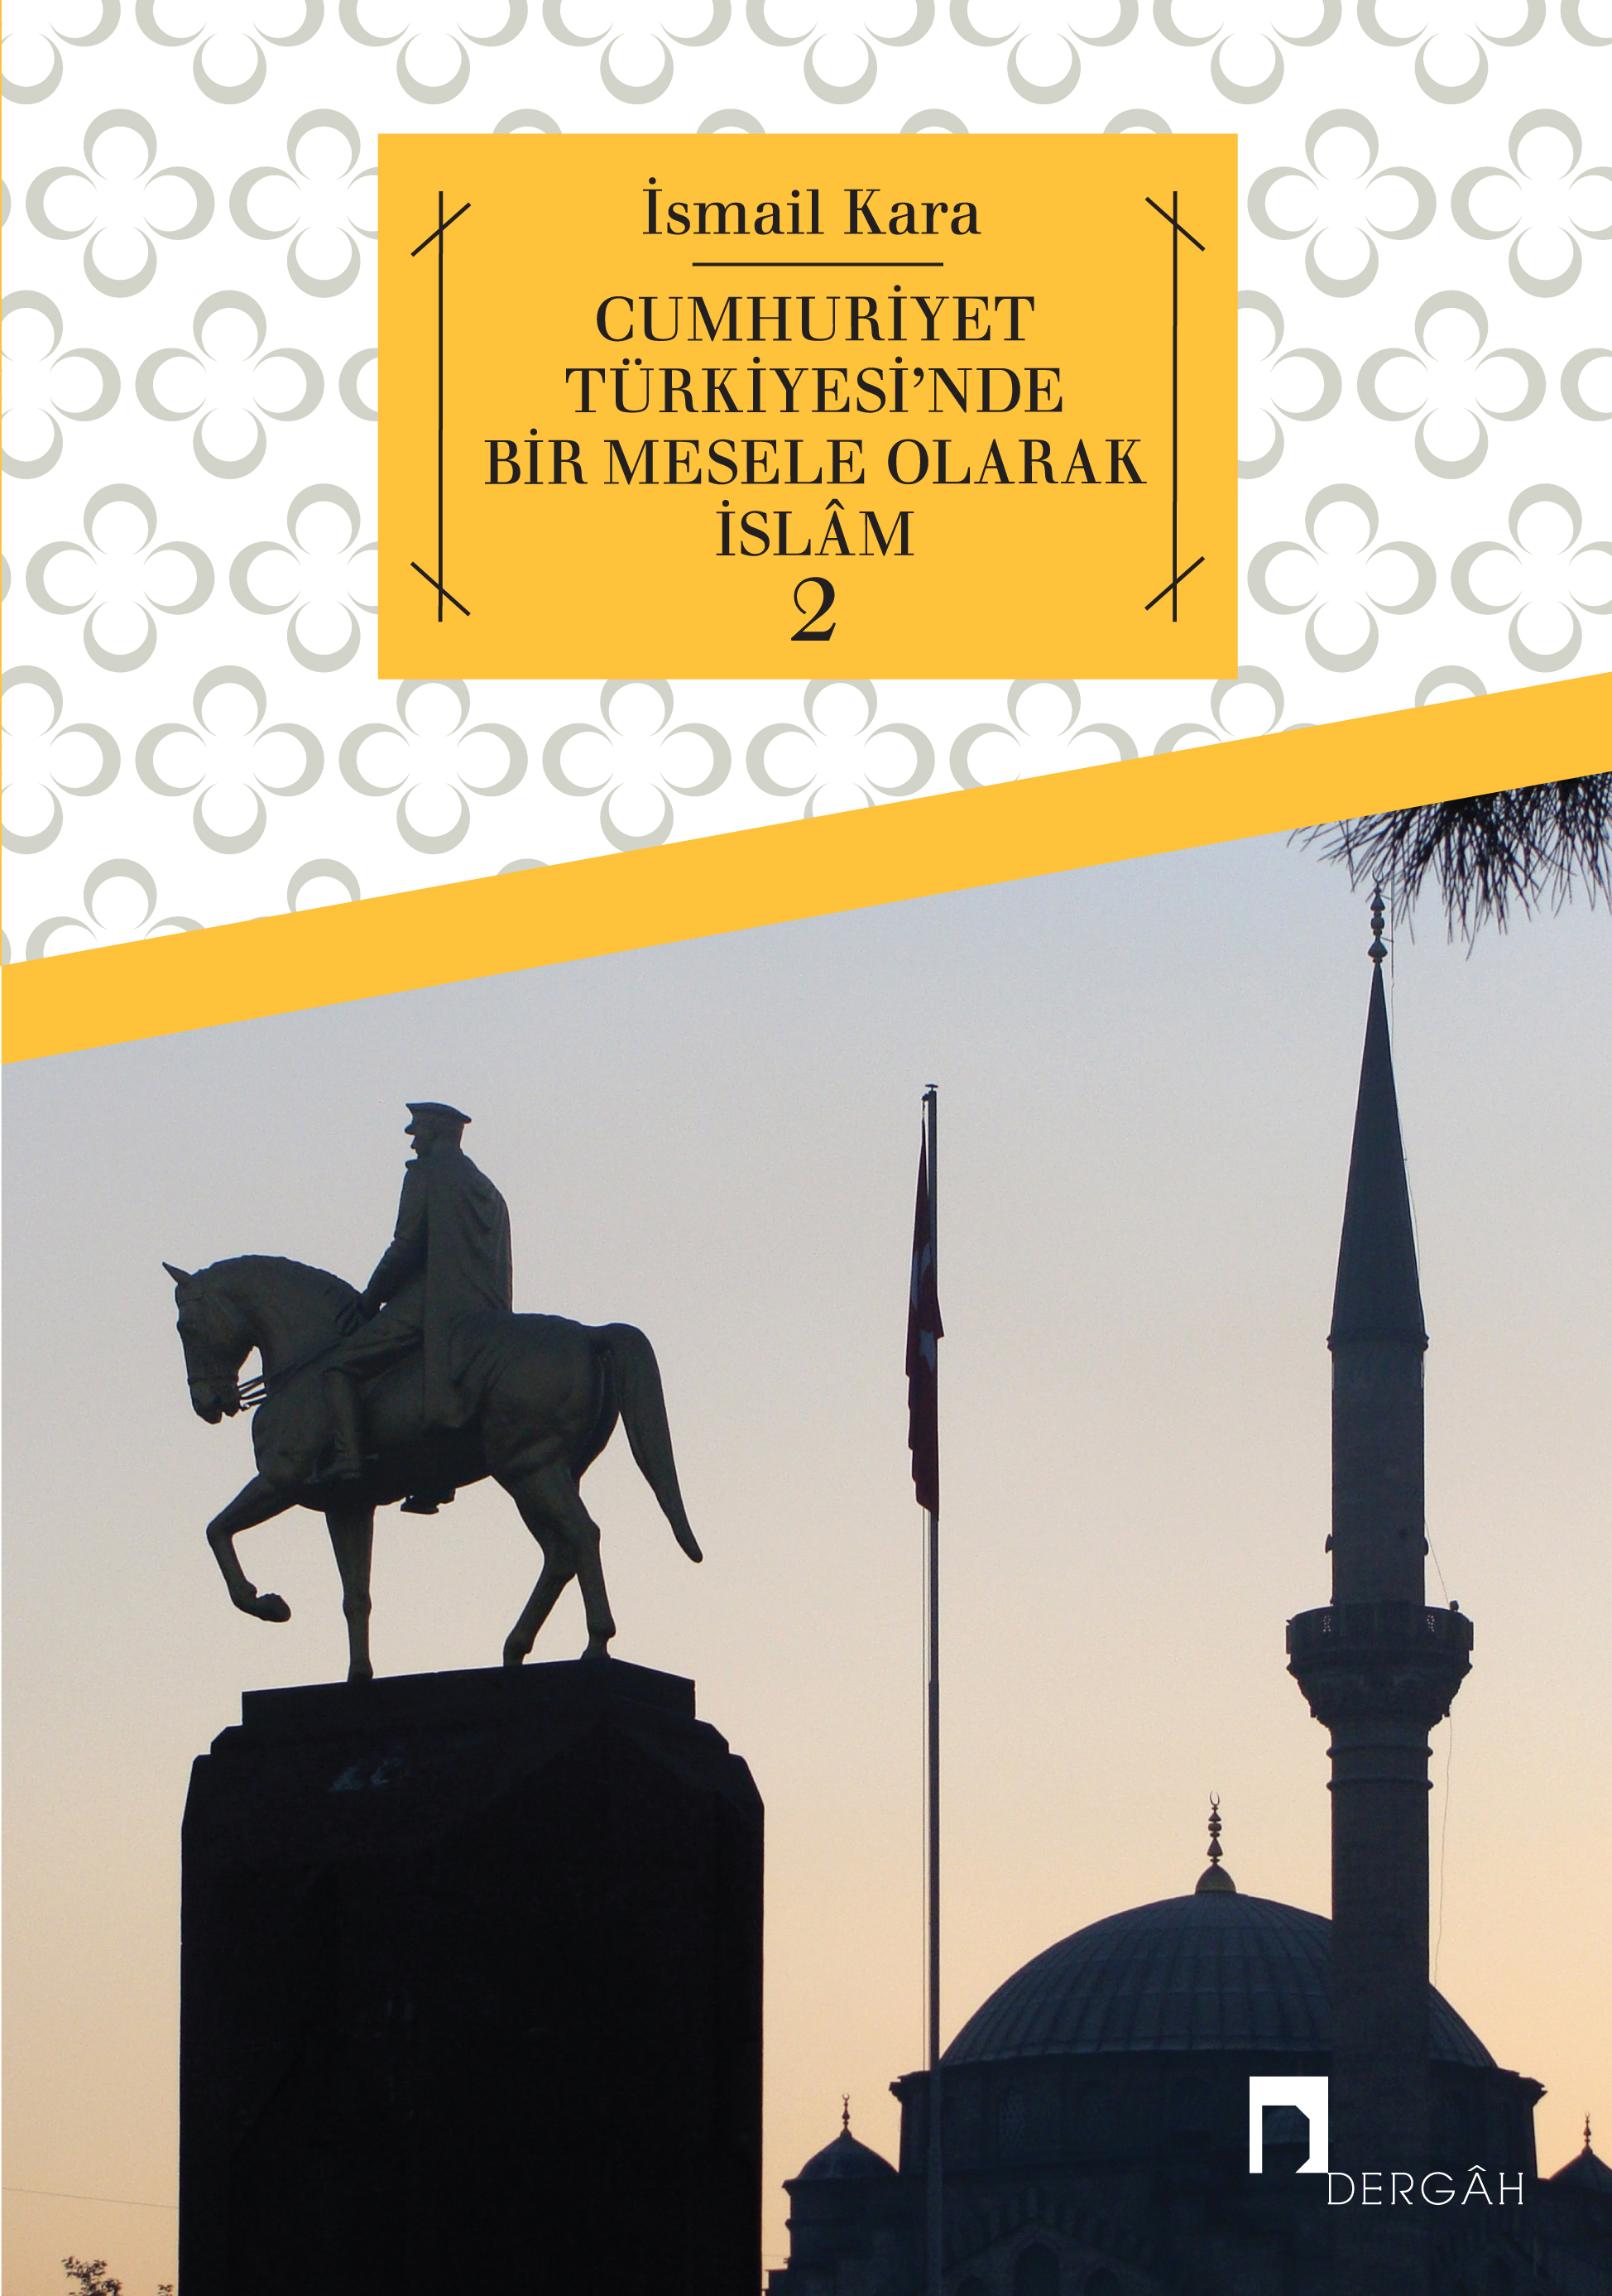 islam and islamism in turkey a conversation with İsmail kara maydan